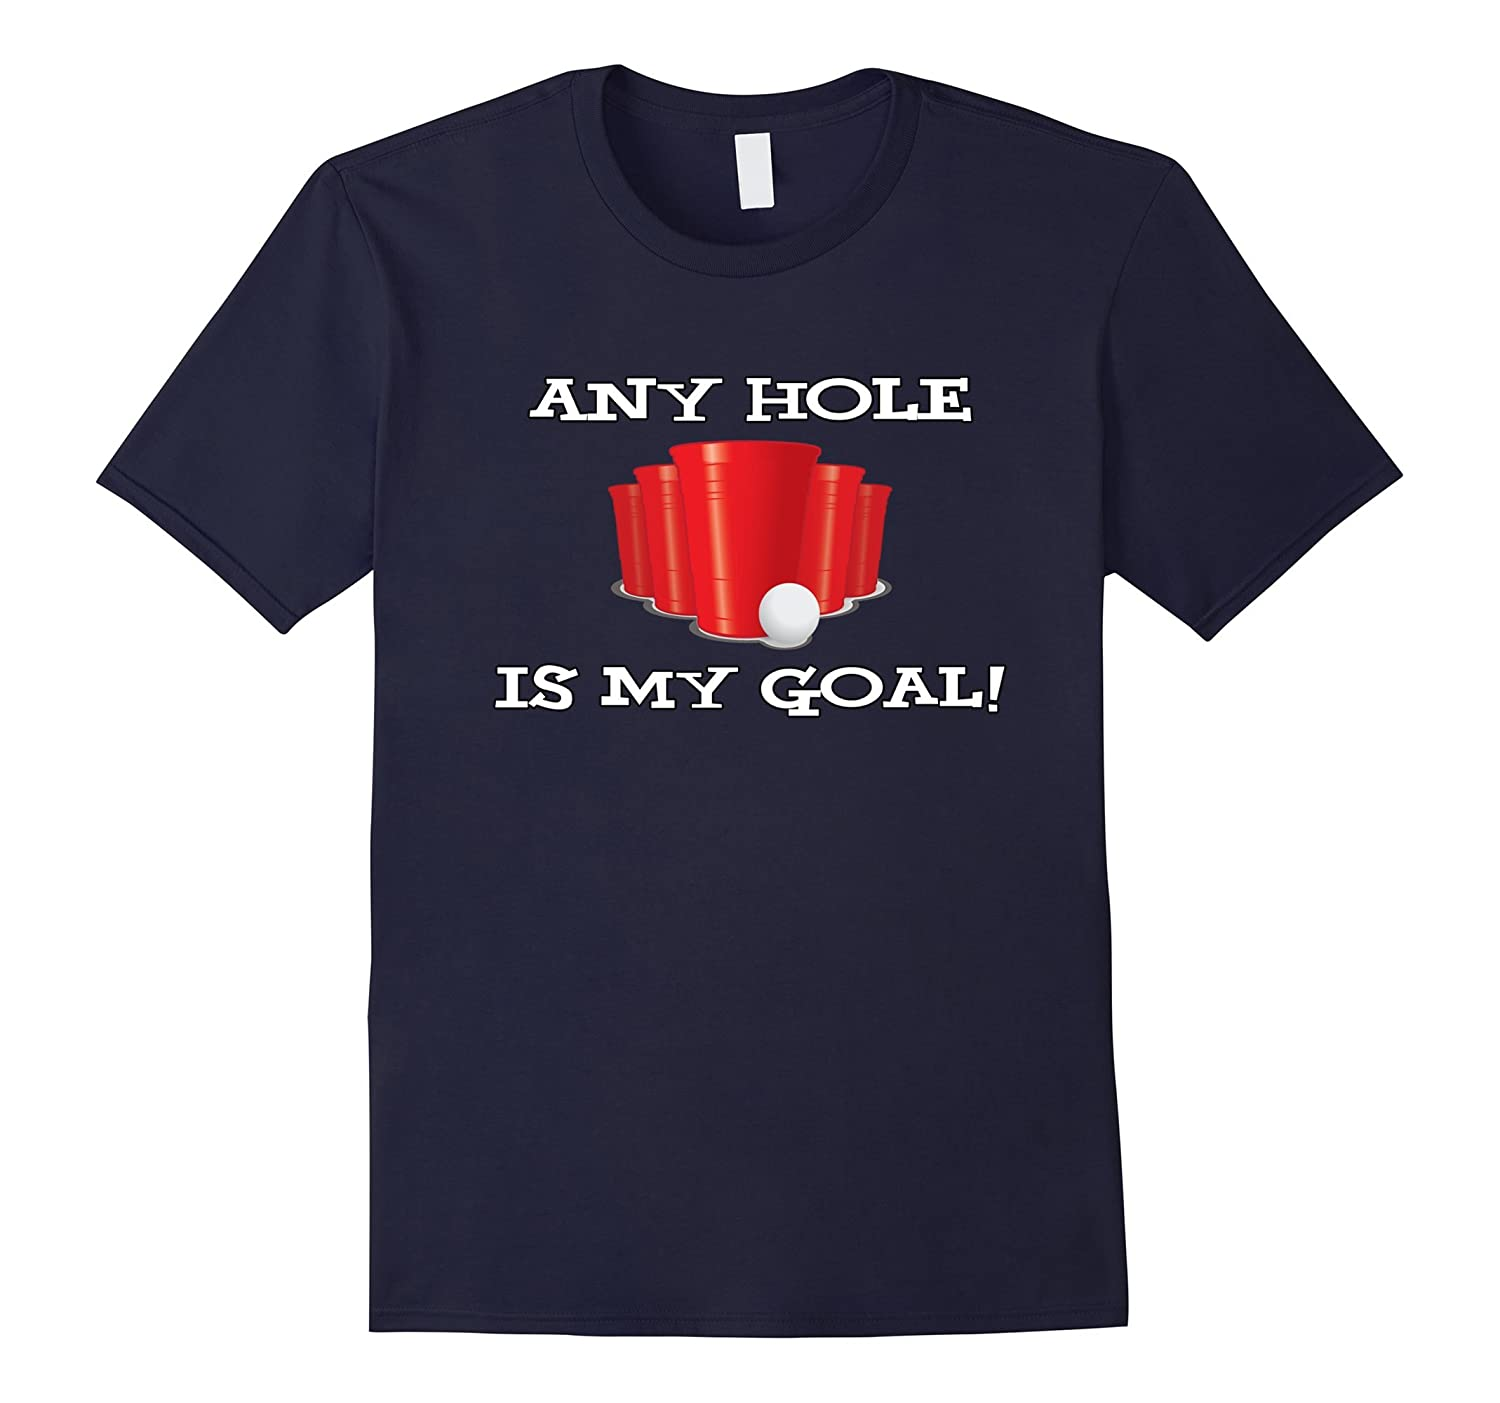 Any hole is my goal! - Funny beer pong college T-Shirt-BN